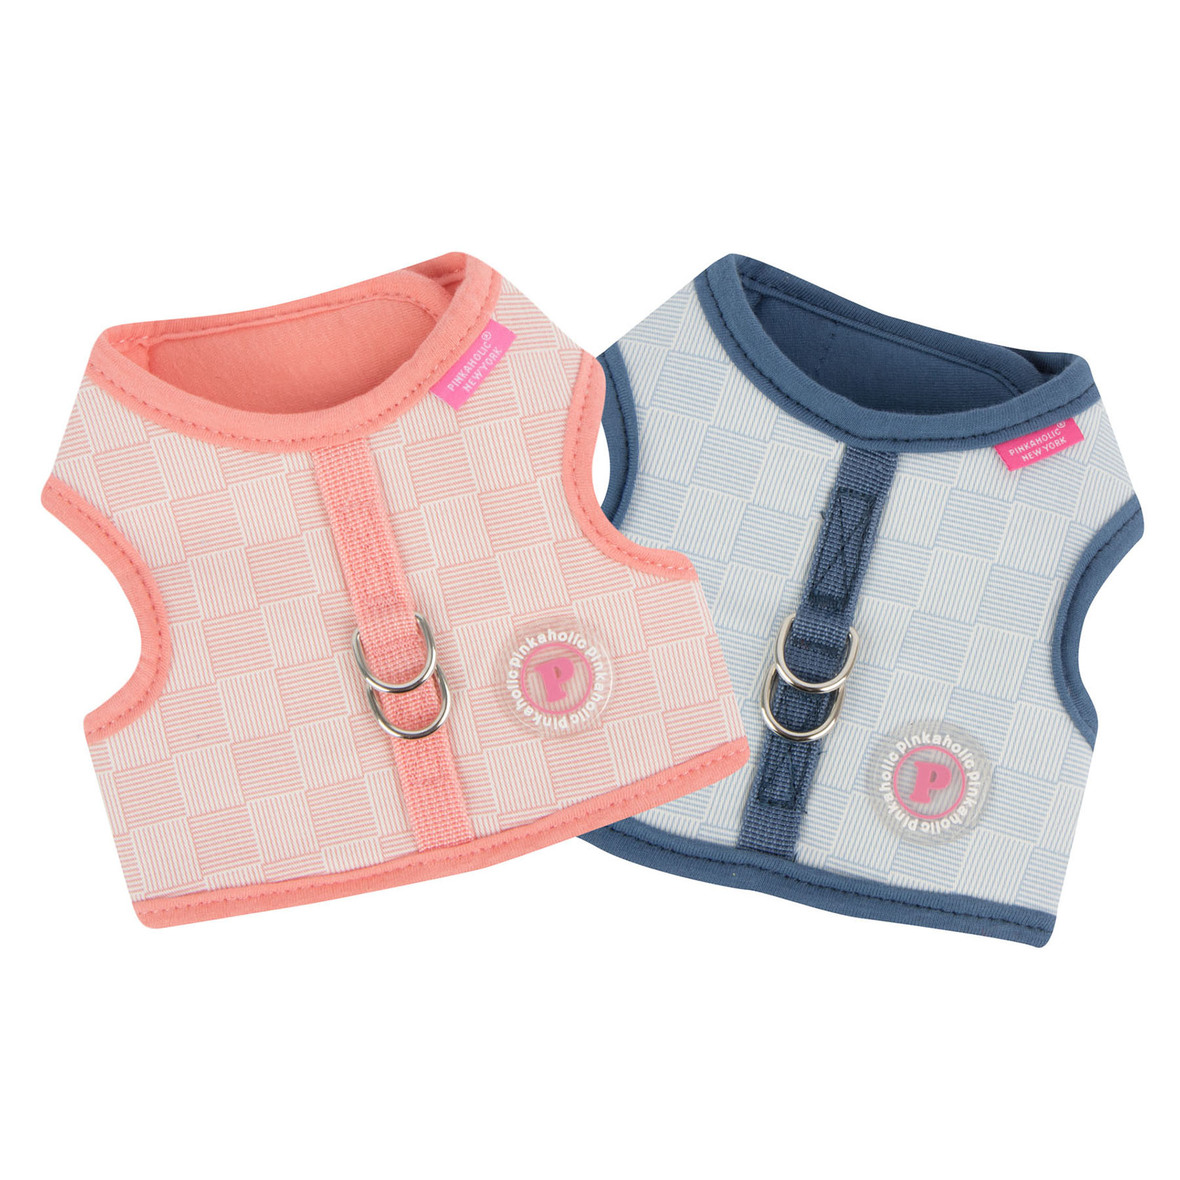 New Puppia Harnesses - Order Today & Save! Spring 2017